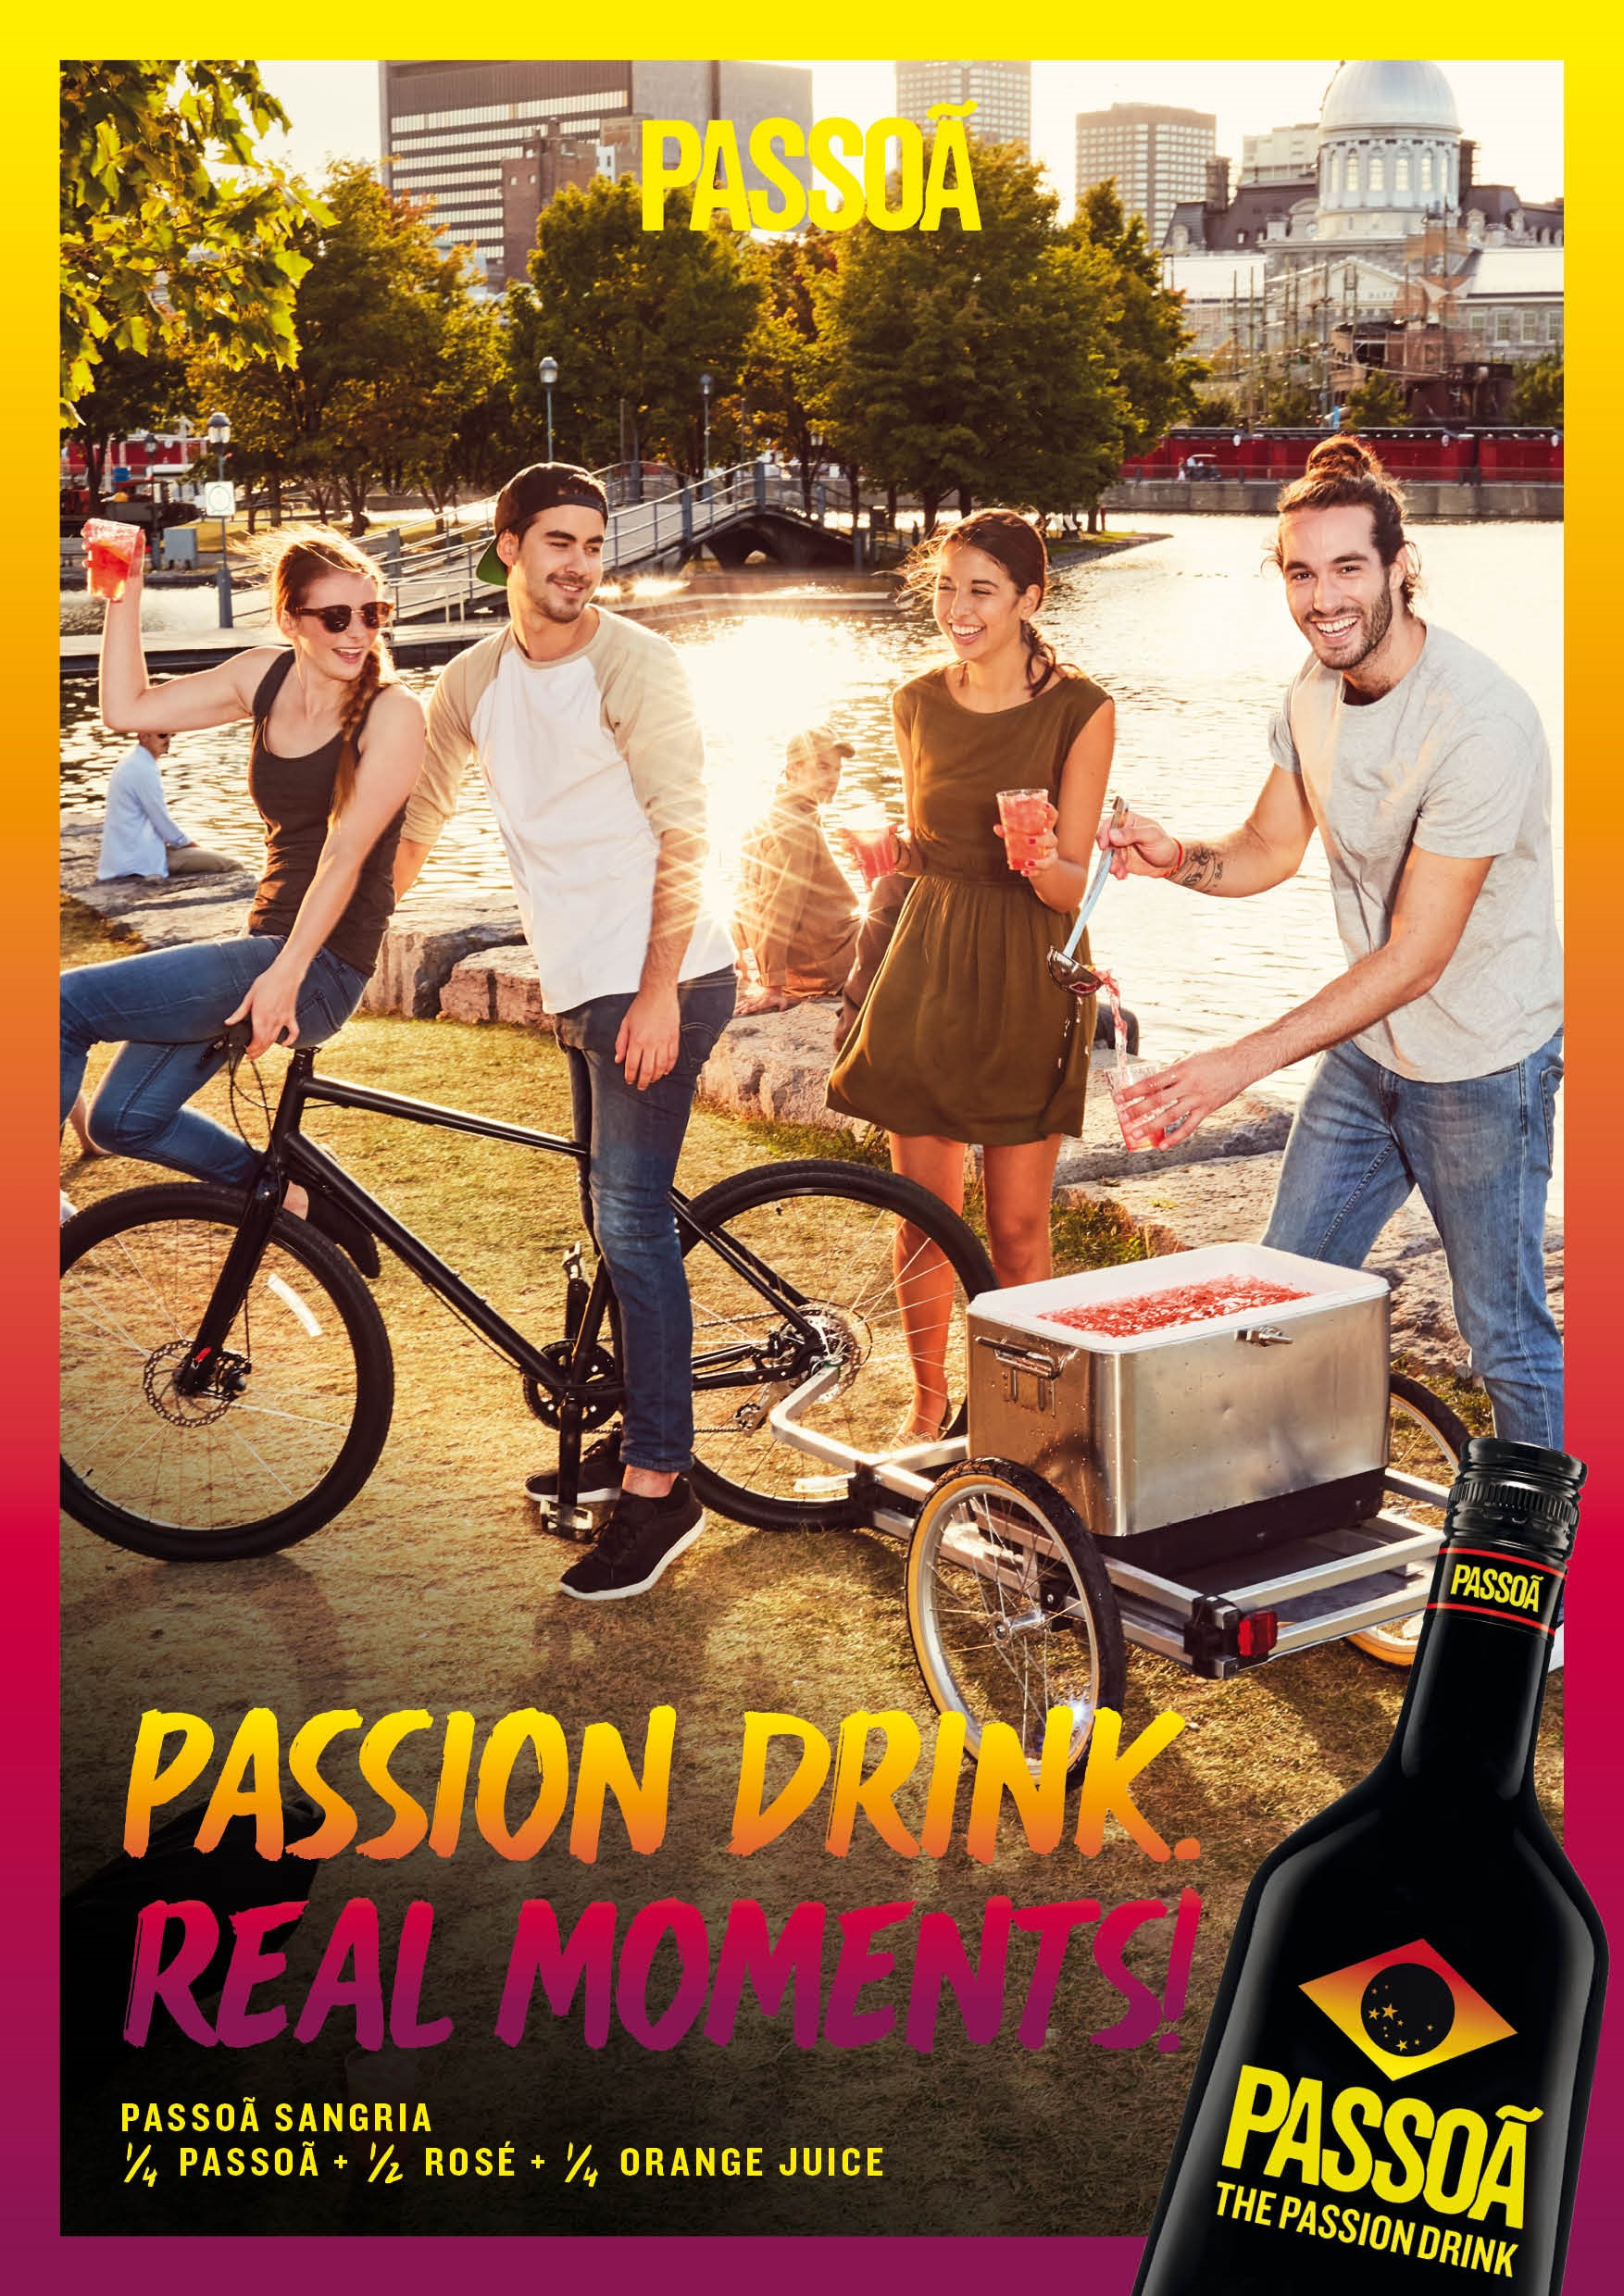 Passoa 'The Passion Drink' Liqueur